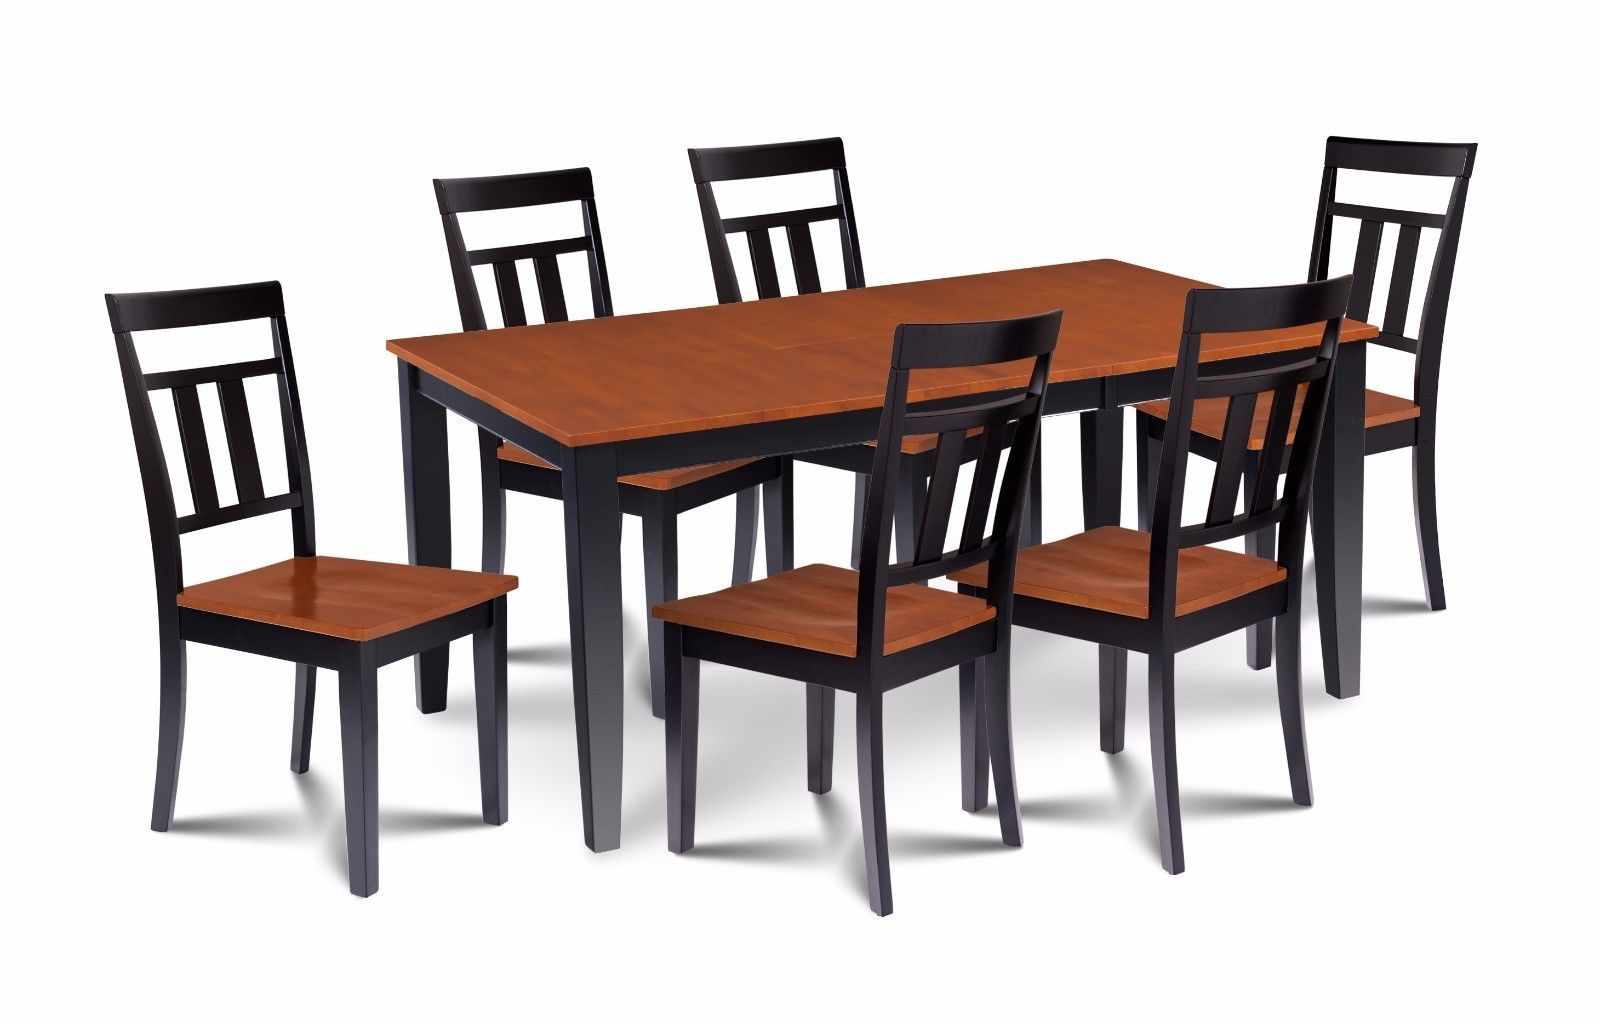 "38"" x 66"" DINING ROOM TABLE SET WITH 18"" LEAF, WOOD SEATS IN BLACK & CHERRY"